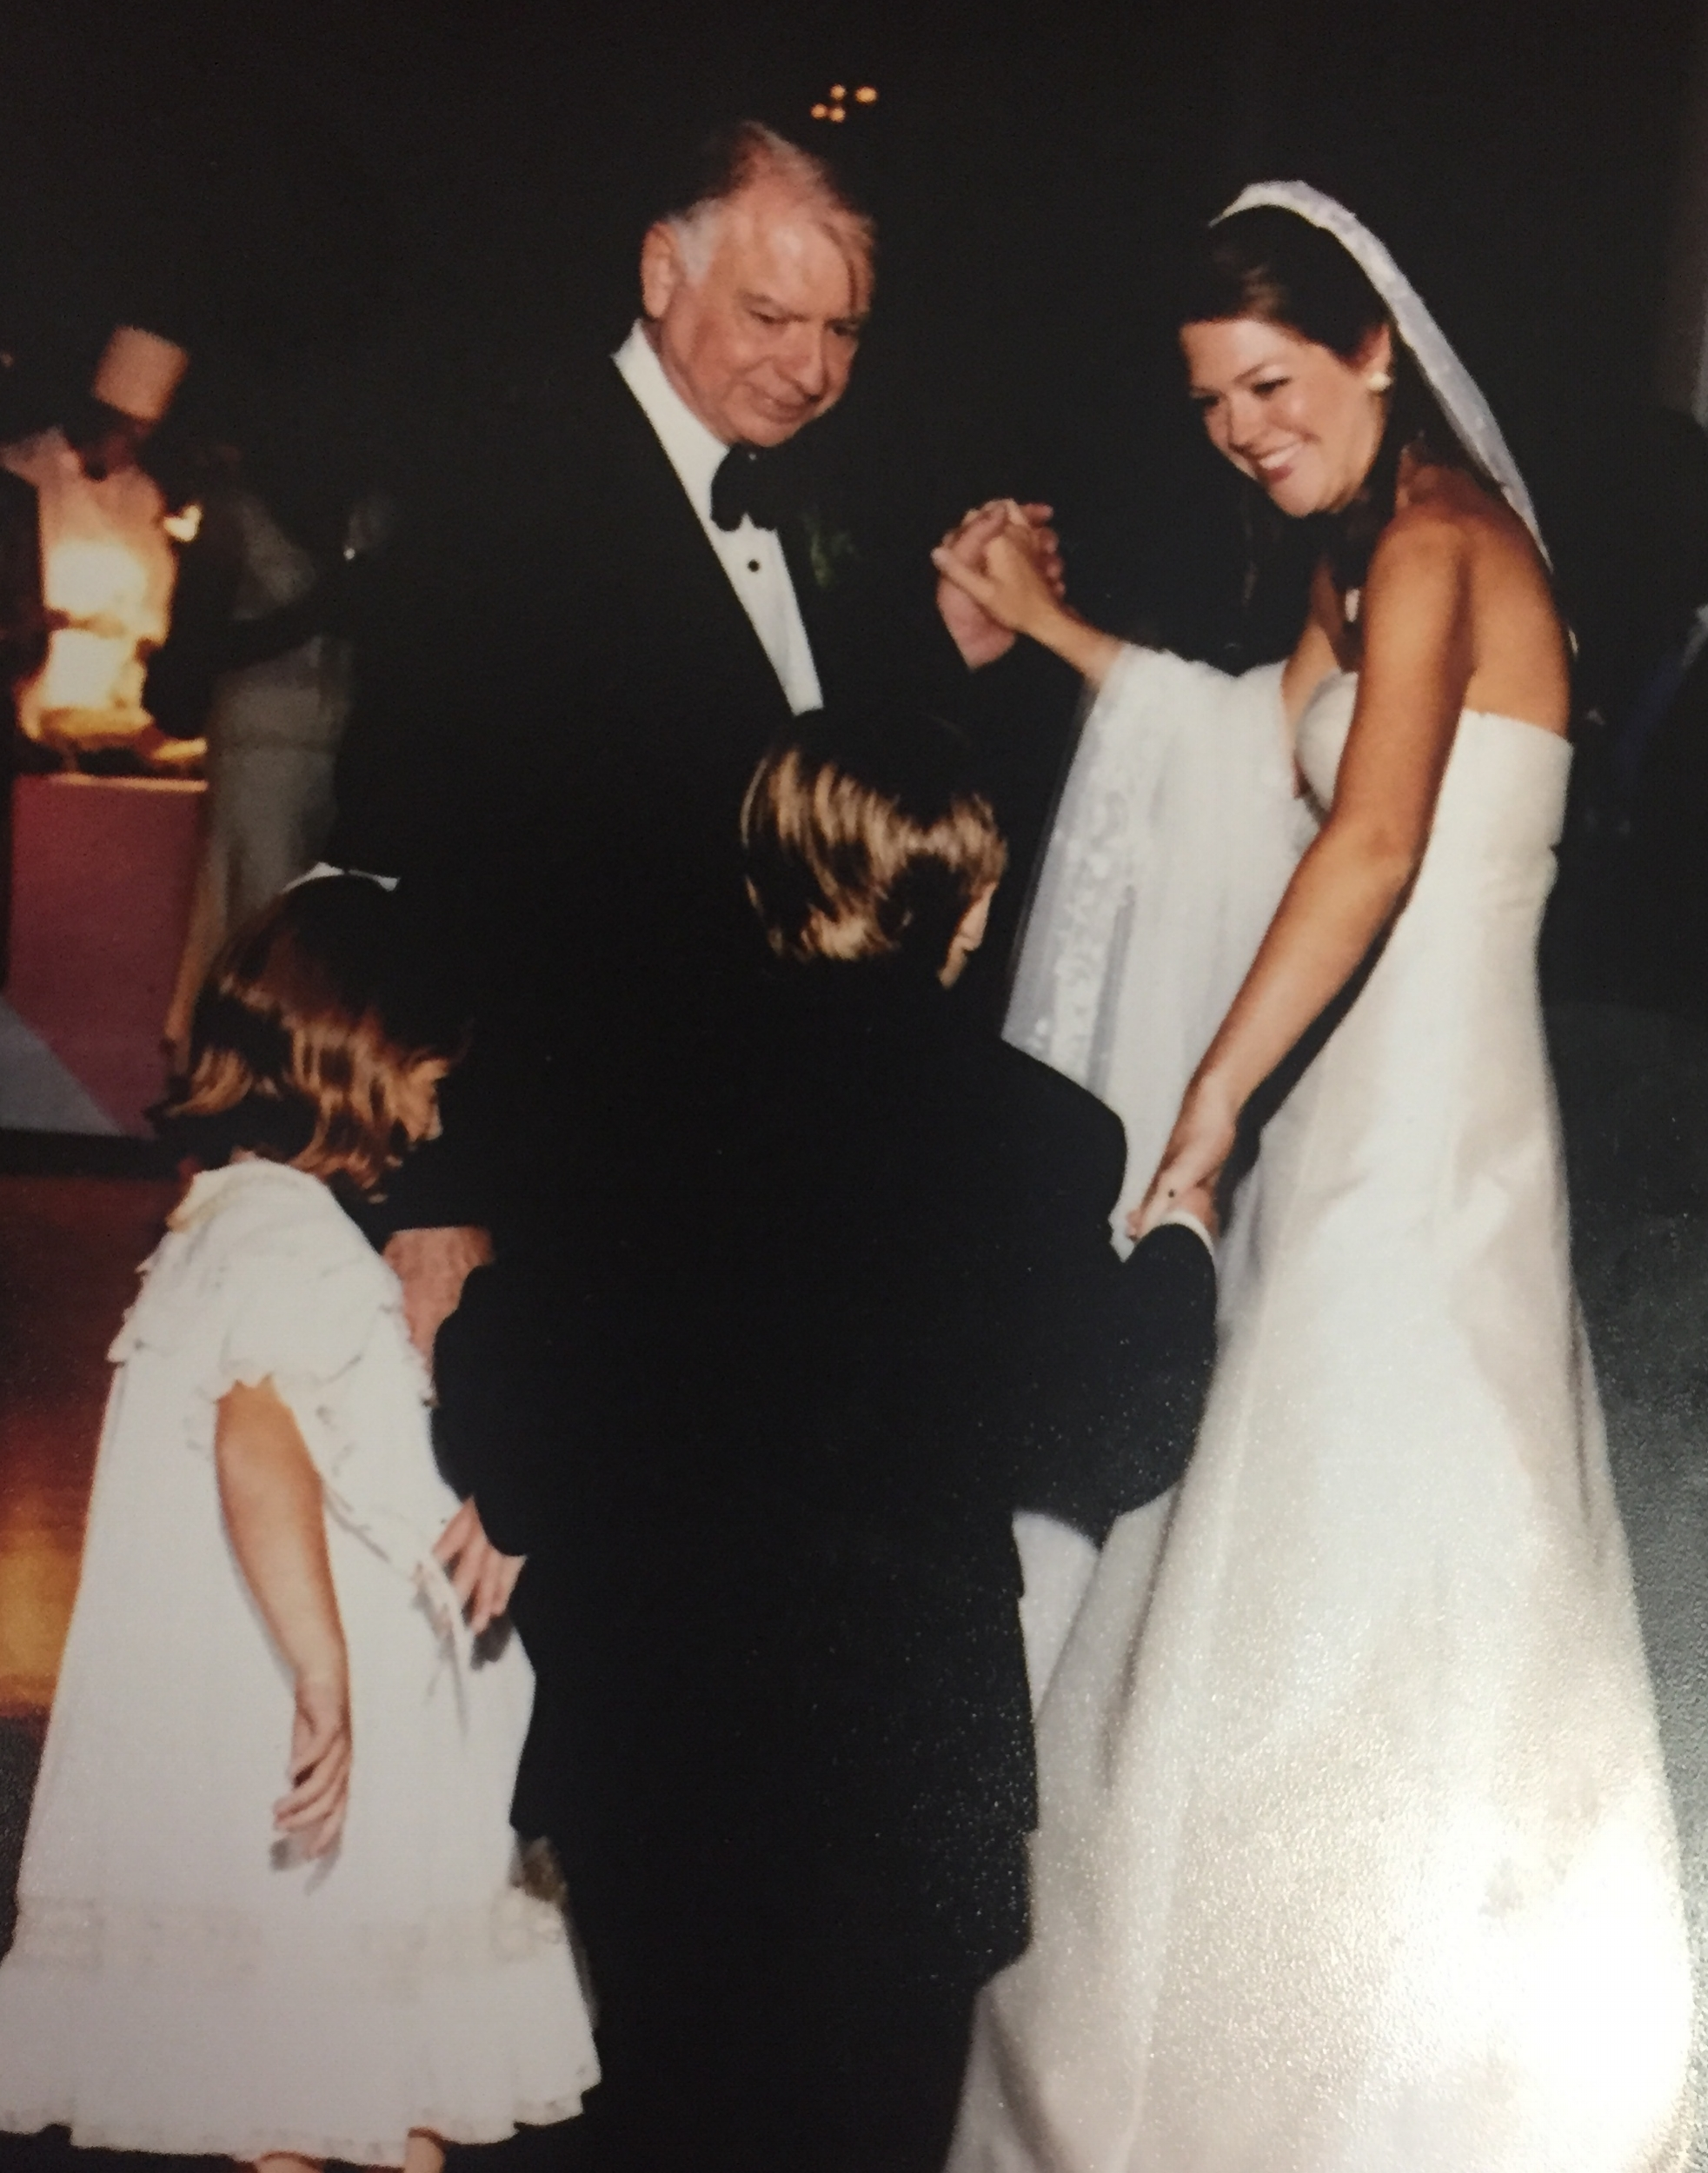 Photo is of Andrew, left, and his daughter Katie, the bride, with Trot, whose back is facing the camera, and his granddaughter.